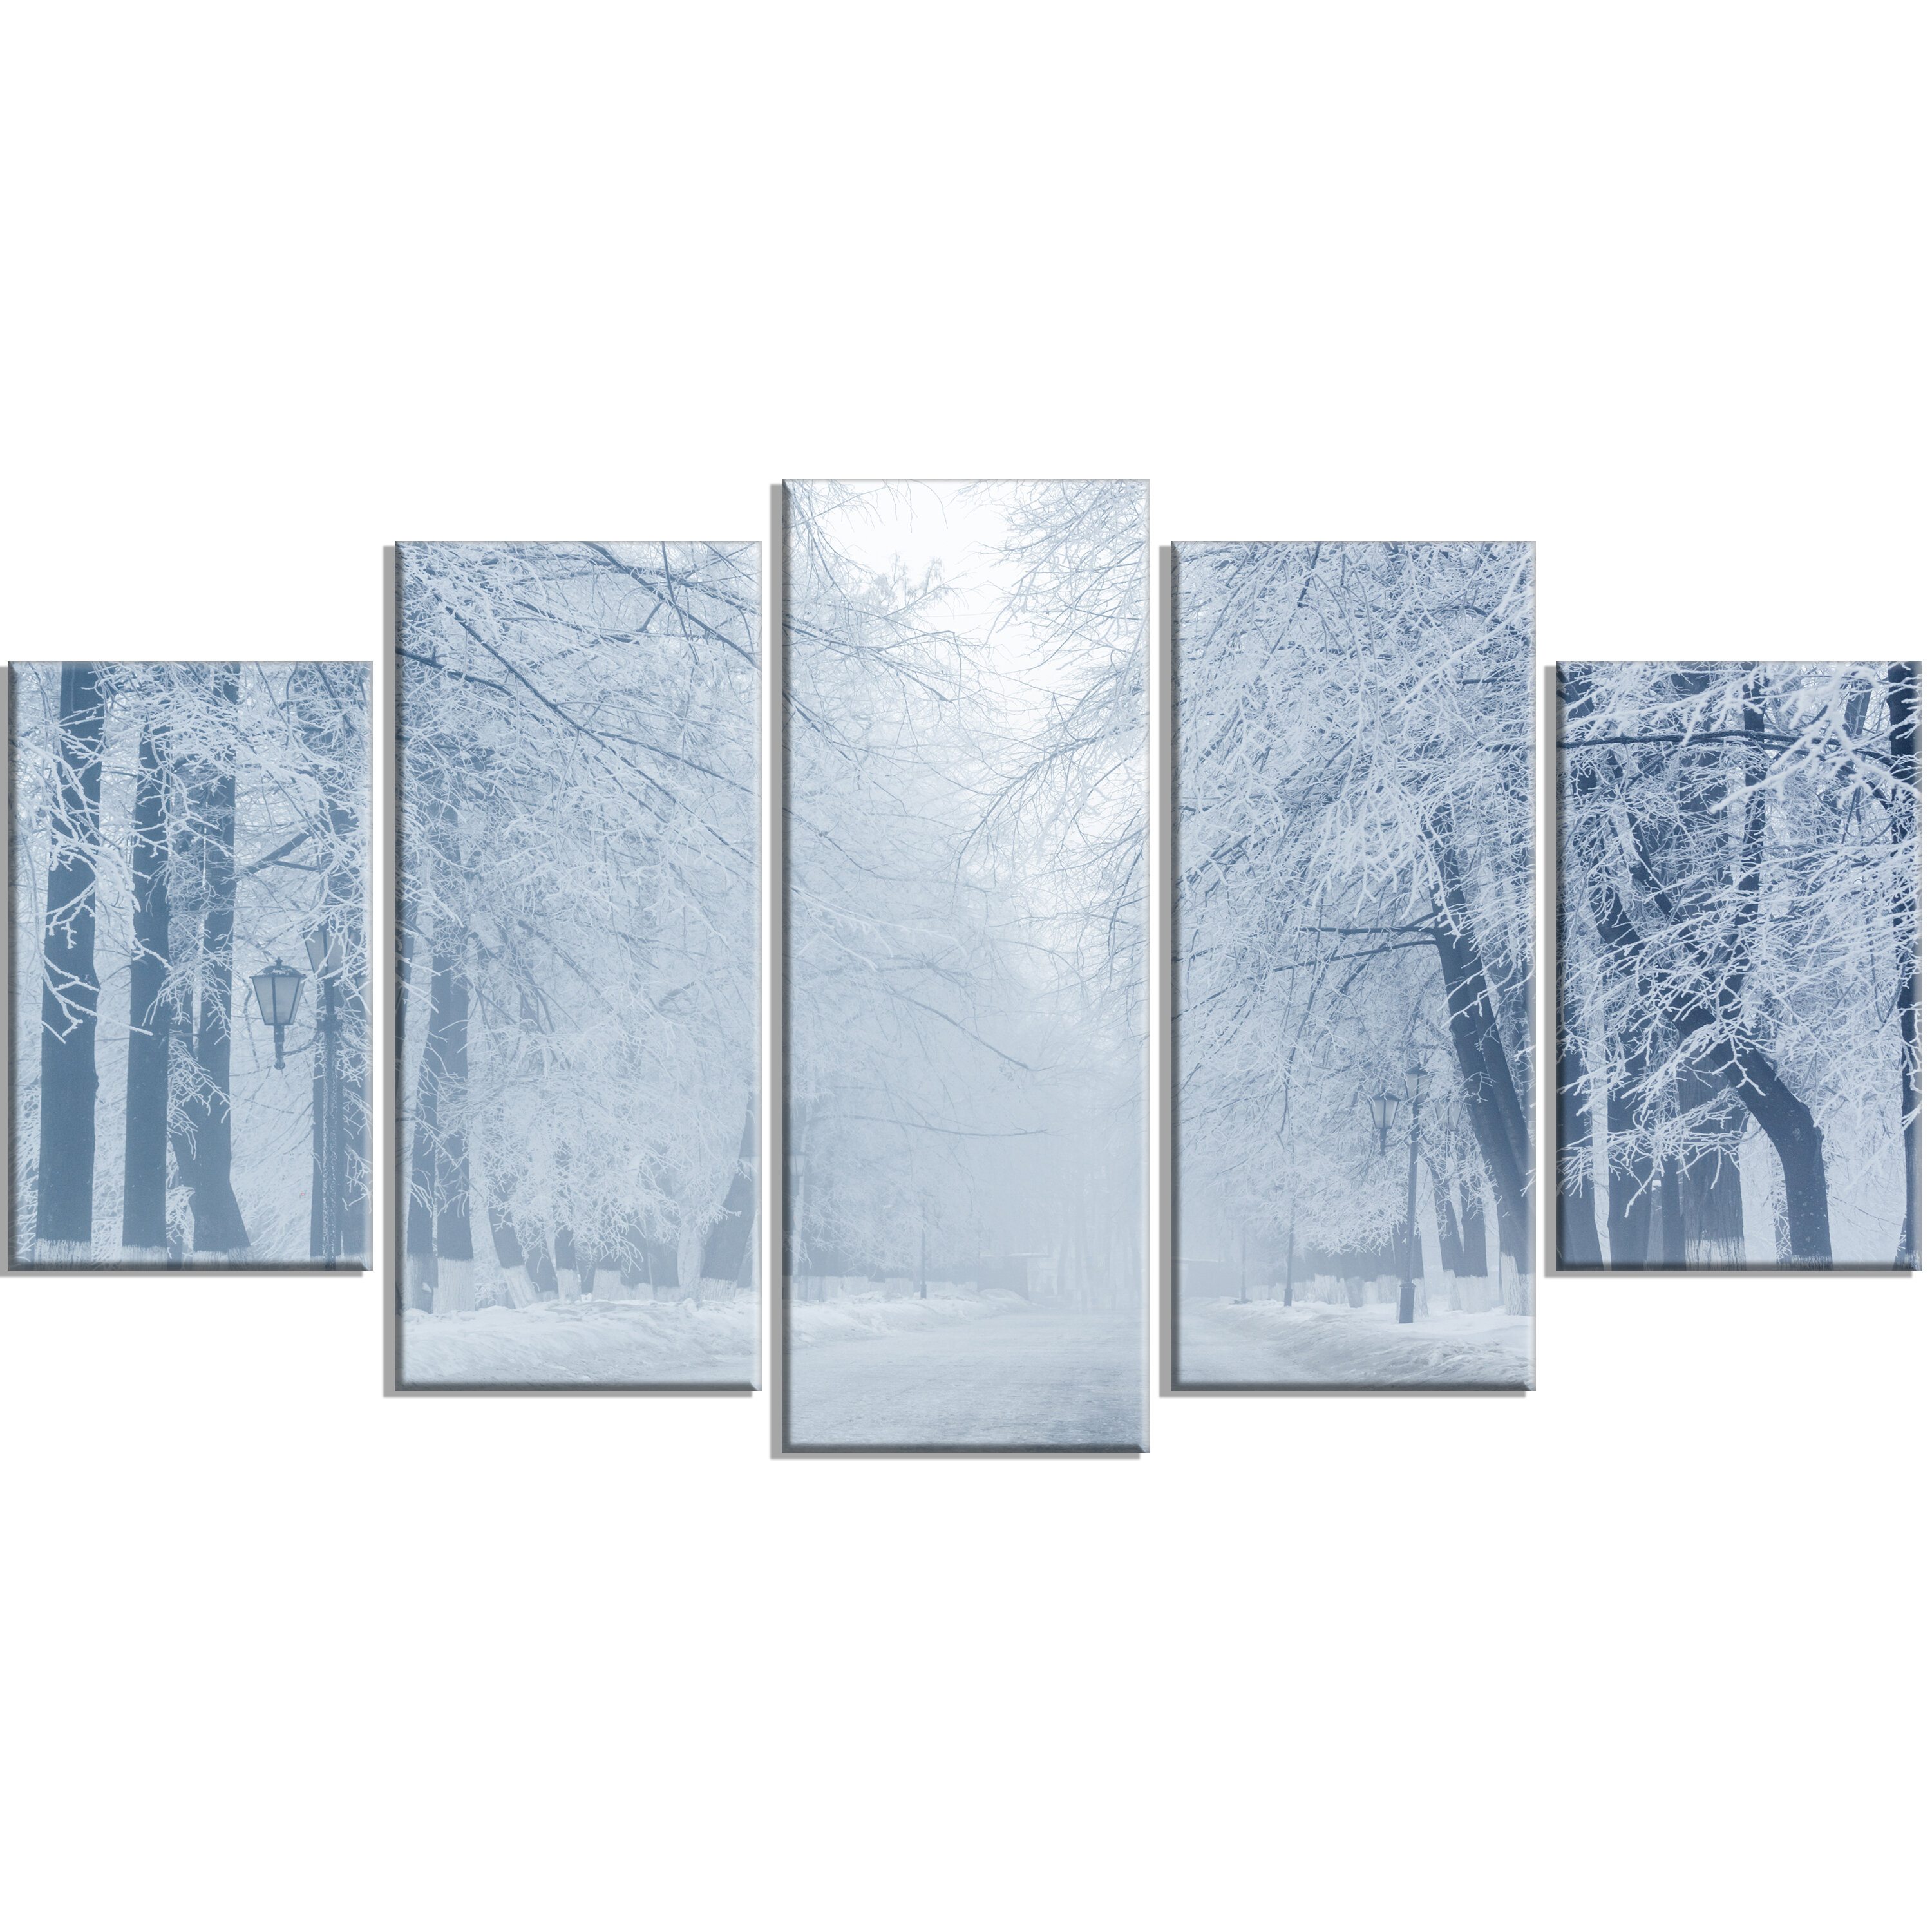 Designart White Road And Winter Trees 5 Piece Wall Art On Wrapped Canvas Set Wayfair